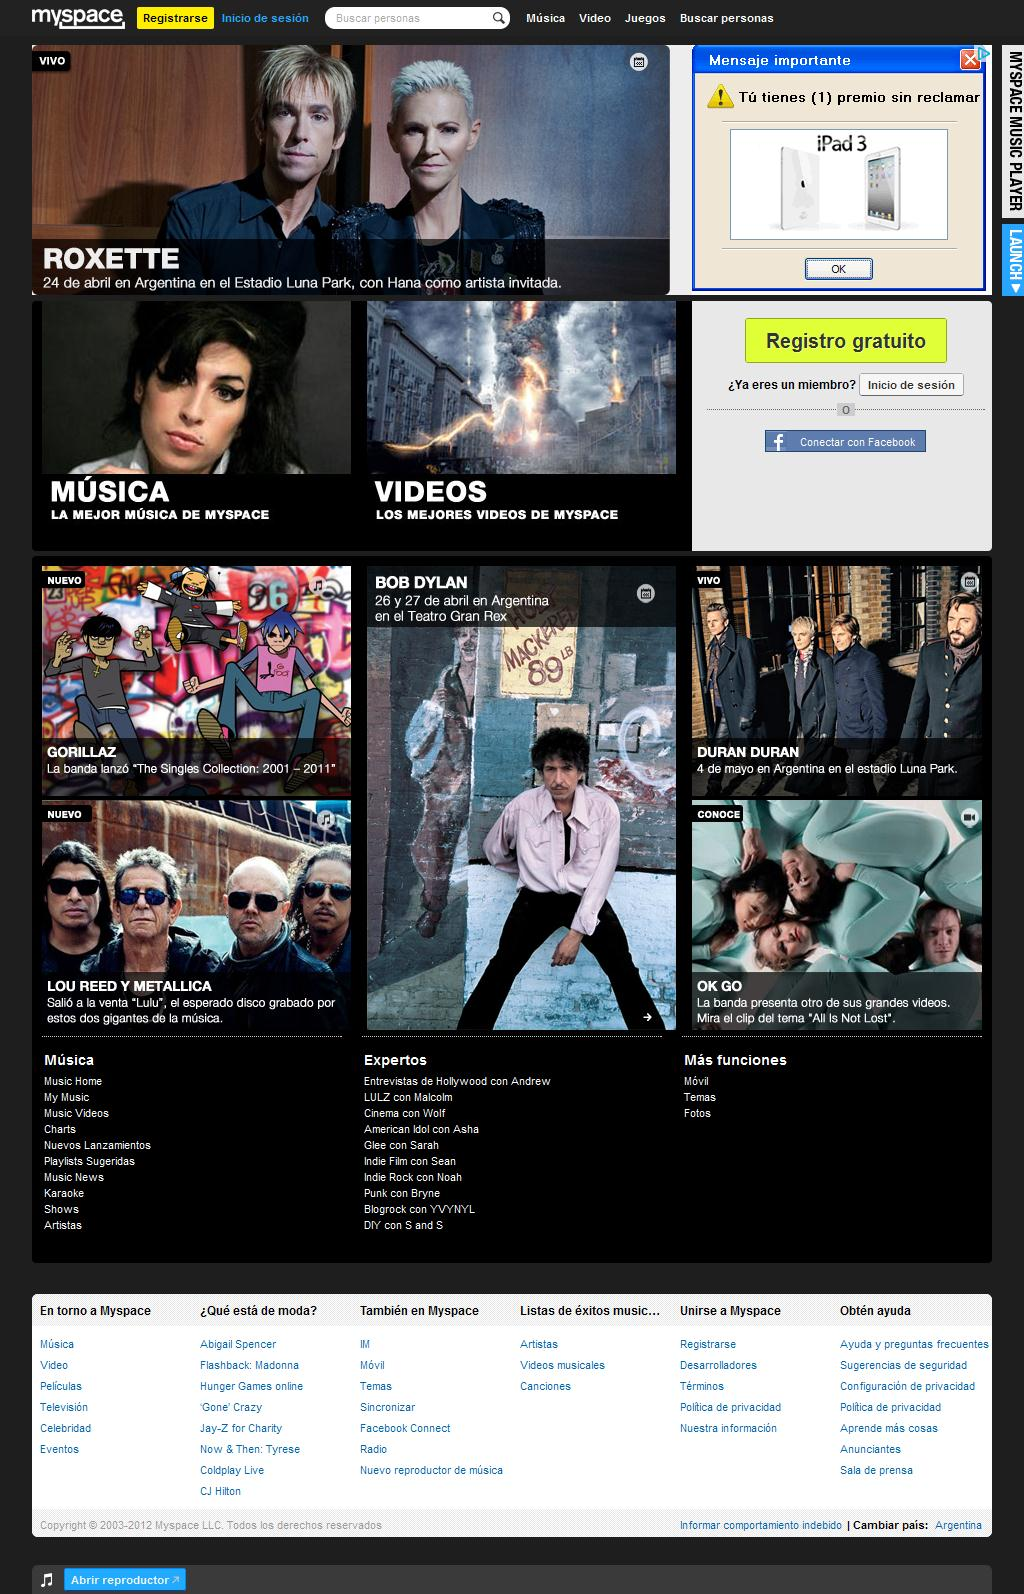 Featured Content on Myspace